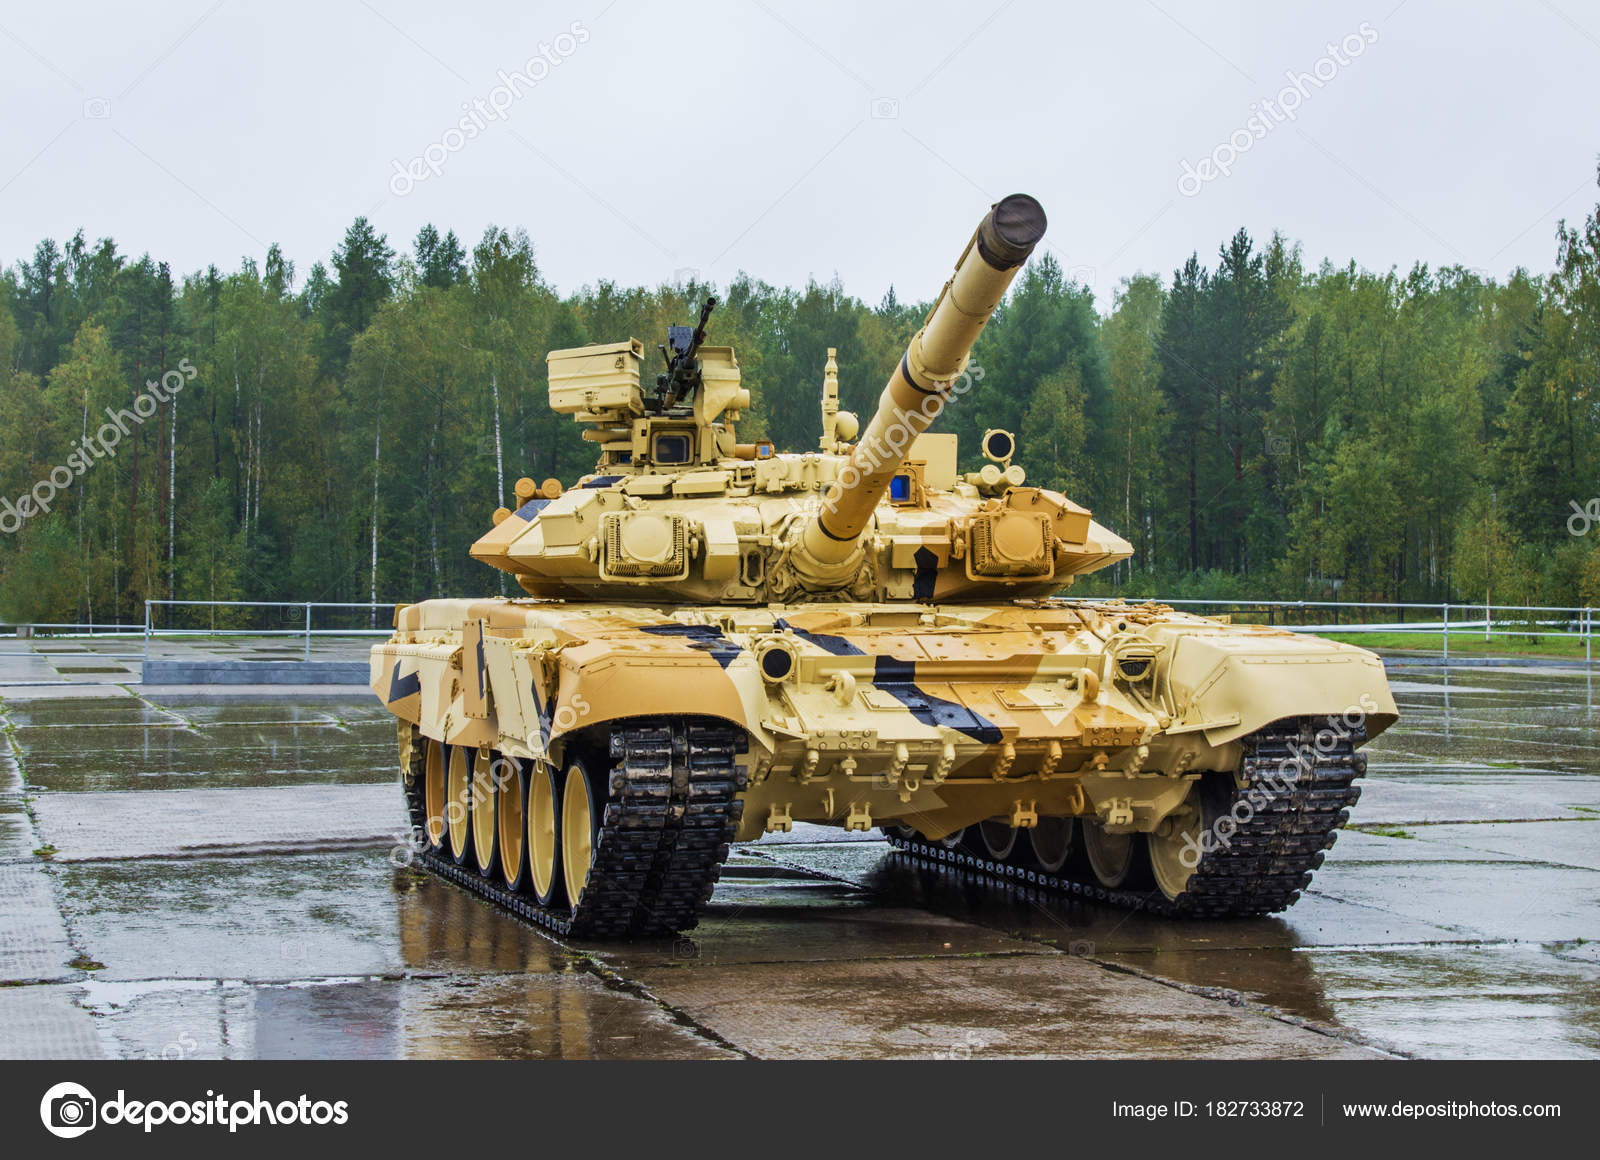 [Obrazek: depositphotos_182733872-stock-photo-russ...-t-90s.jpg]